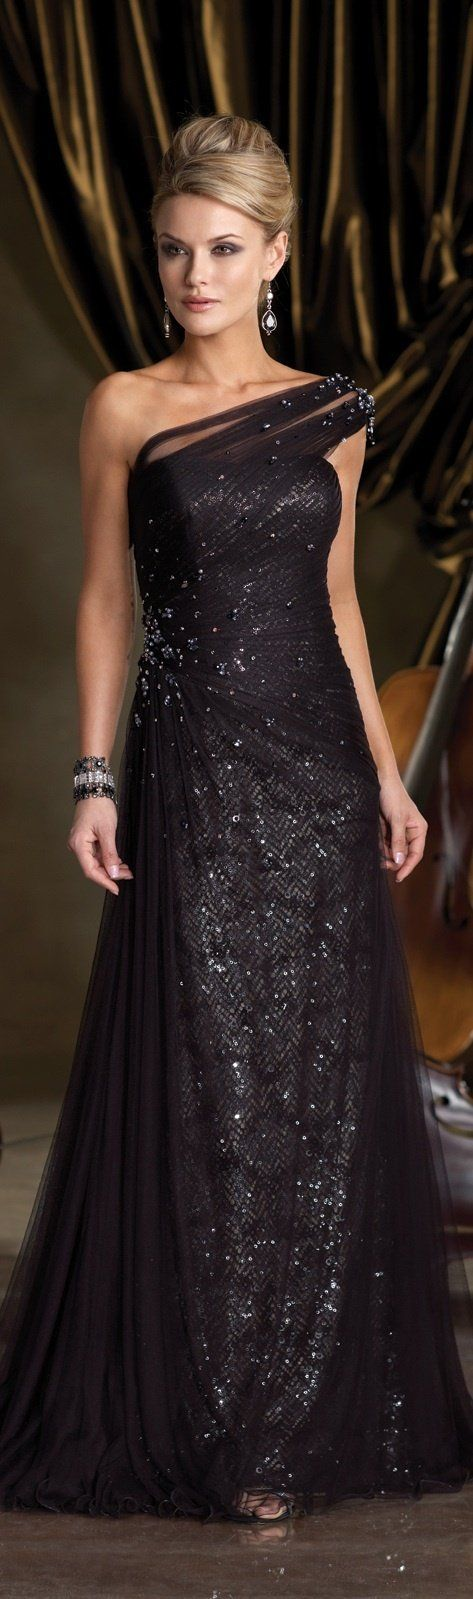 Evening Black Tie Dresses